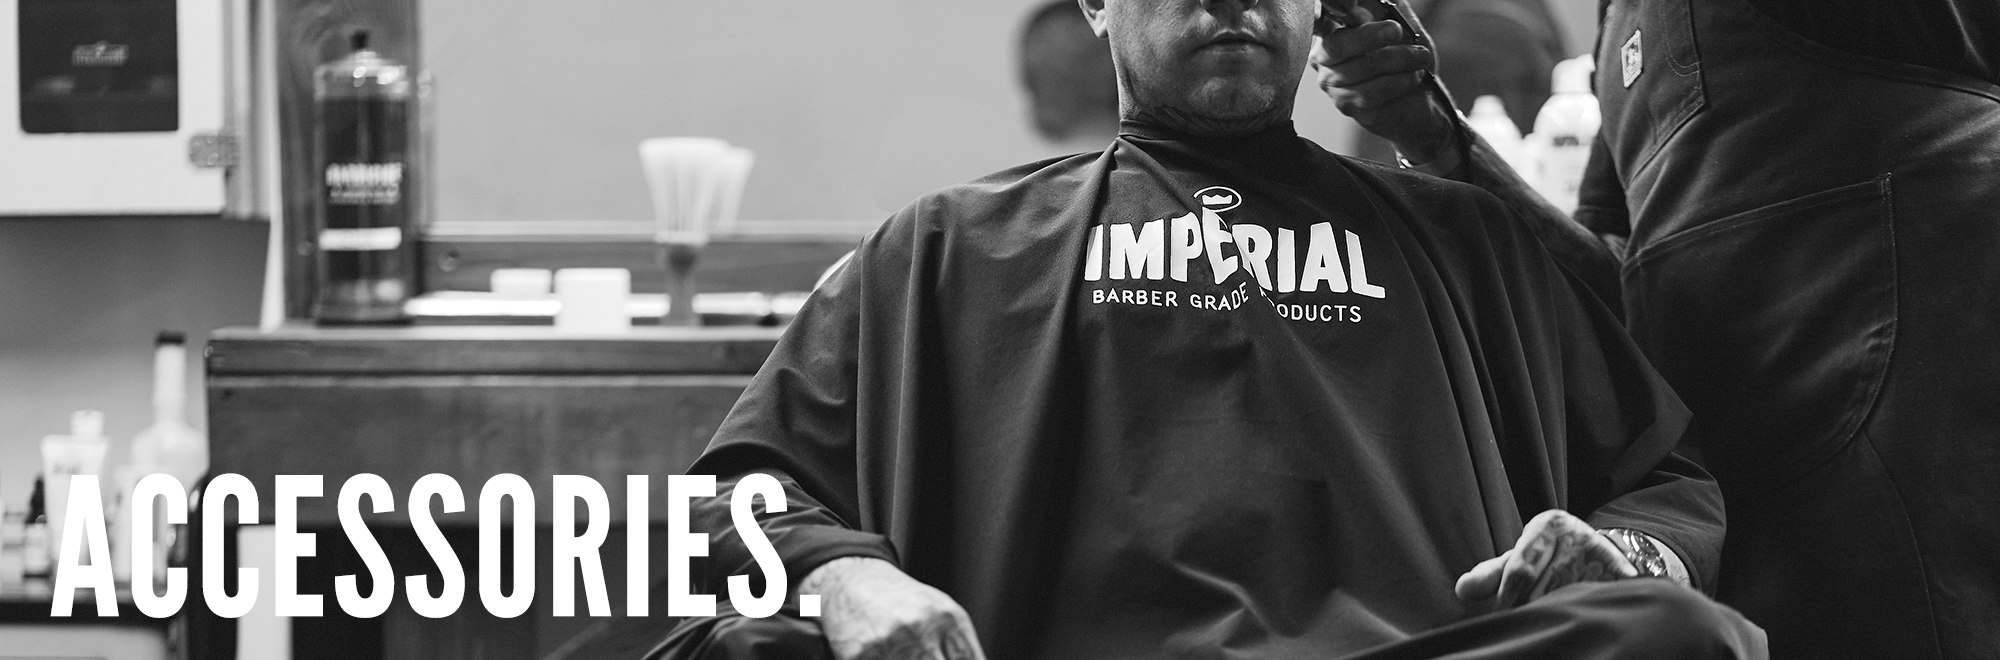 Barber Tools and Accessories - Imperial Barber Products